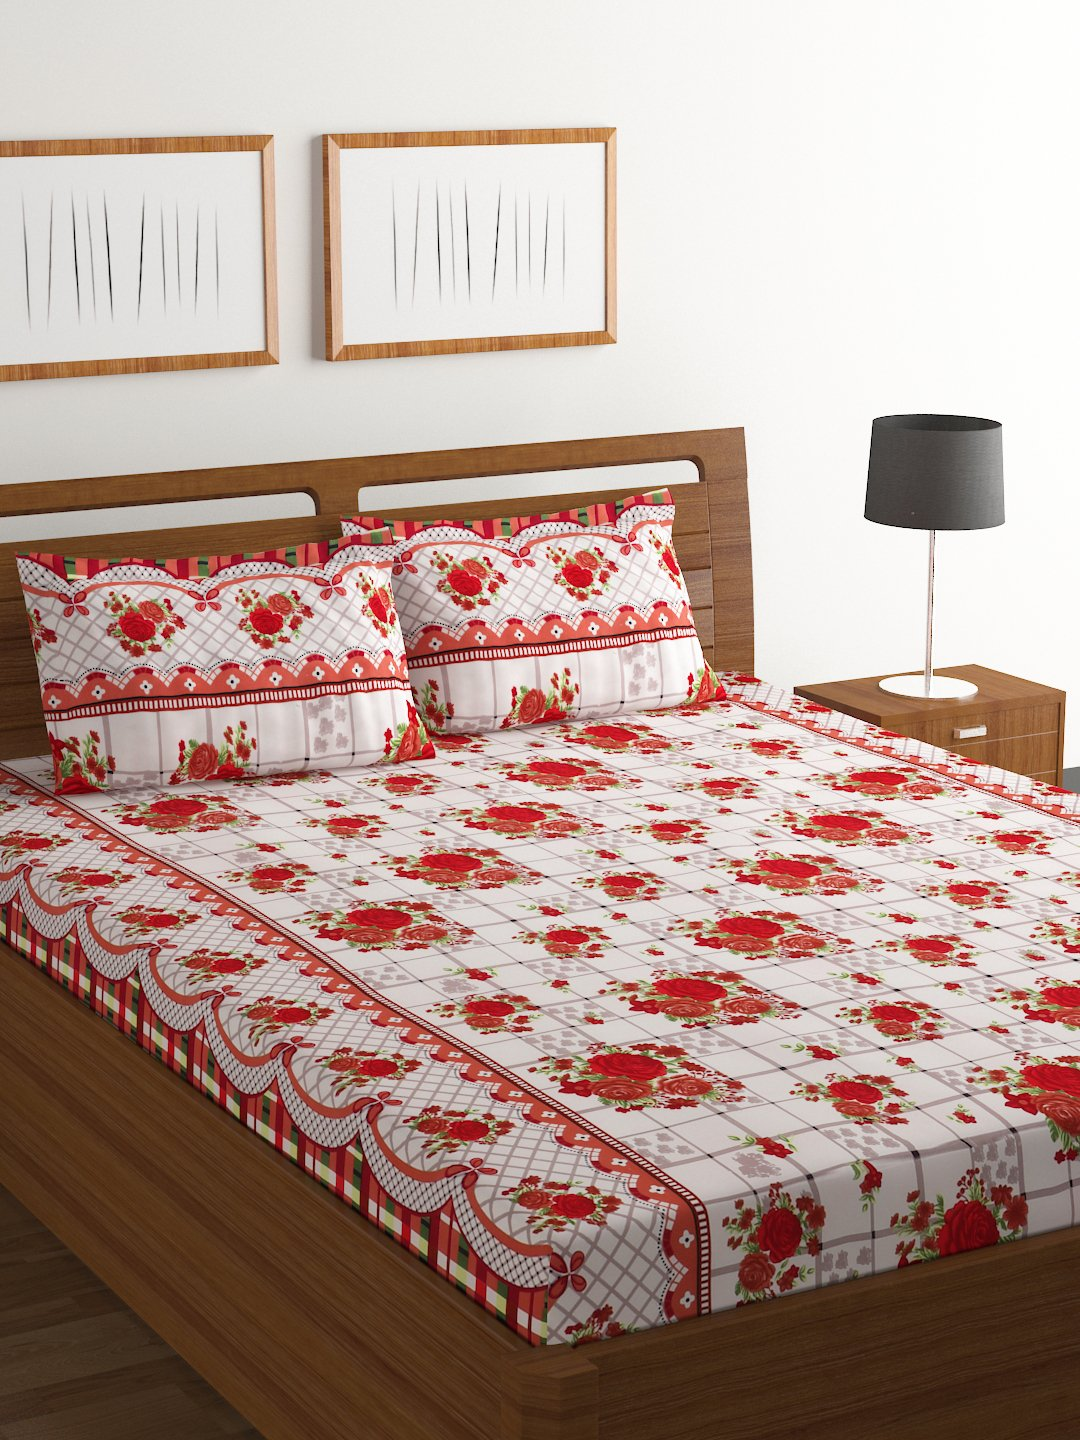 Bombay Dyeing 120 TC Polyester Amber Beautiful and Elegant Modern Print Double Bedsheet with 2 Pillow Covers